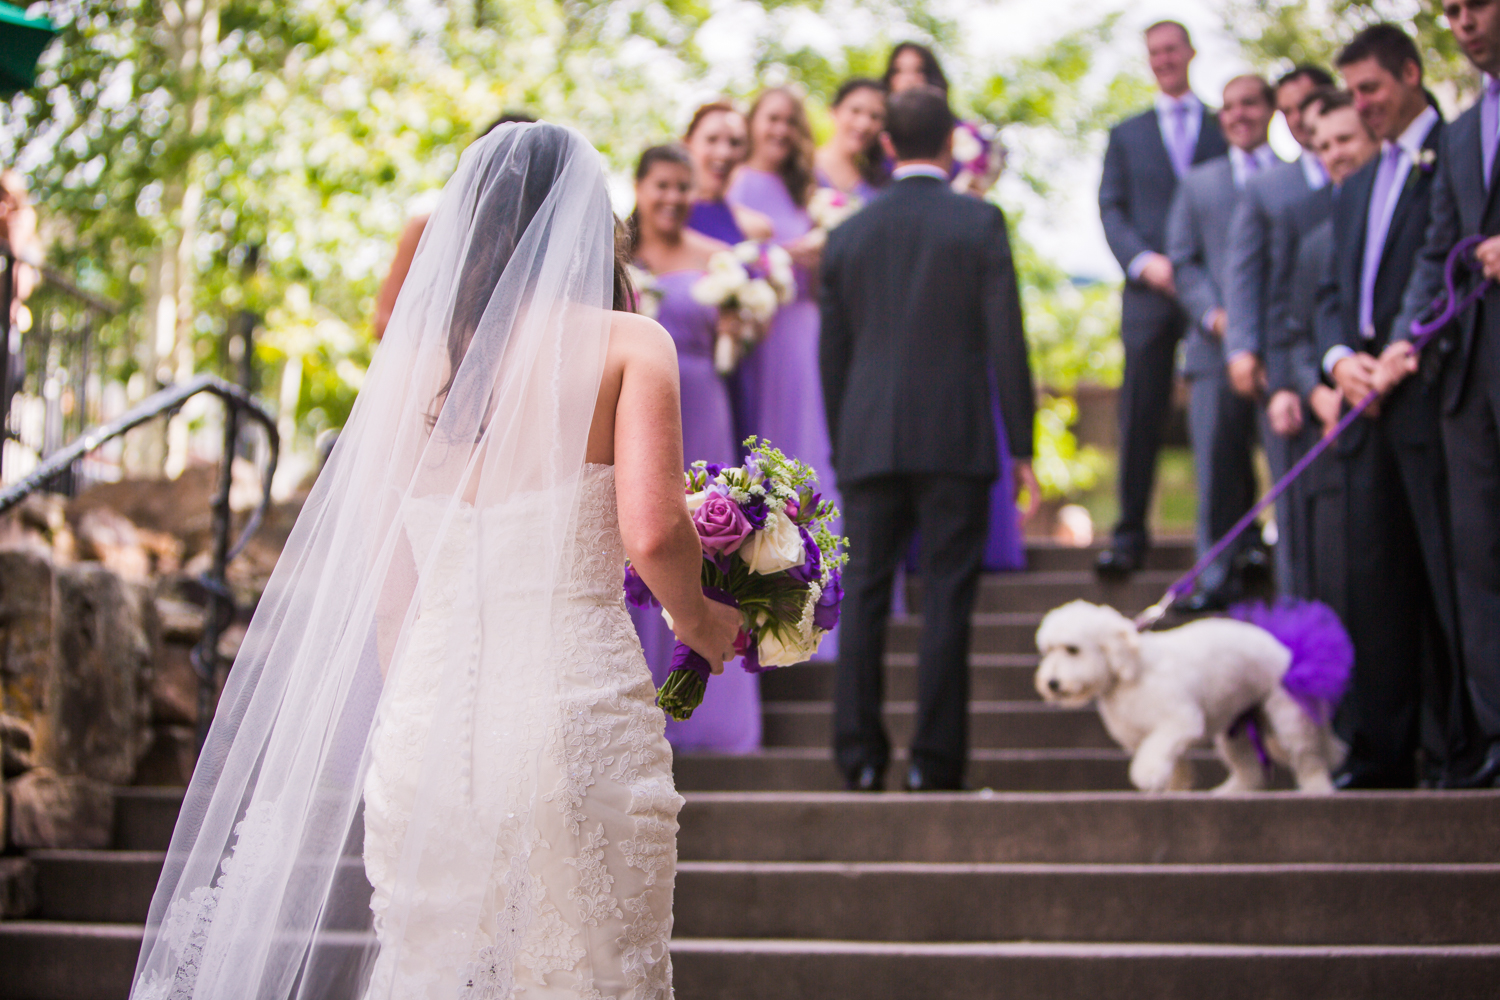 The first look for a Vail Colorado Wedding photographed by JMGant Photography.